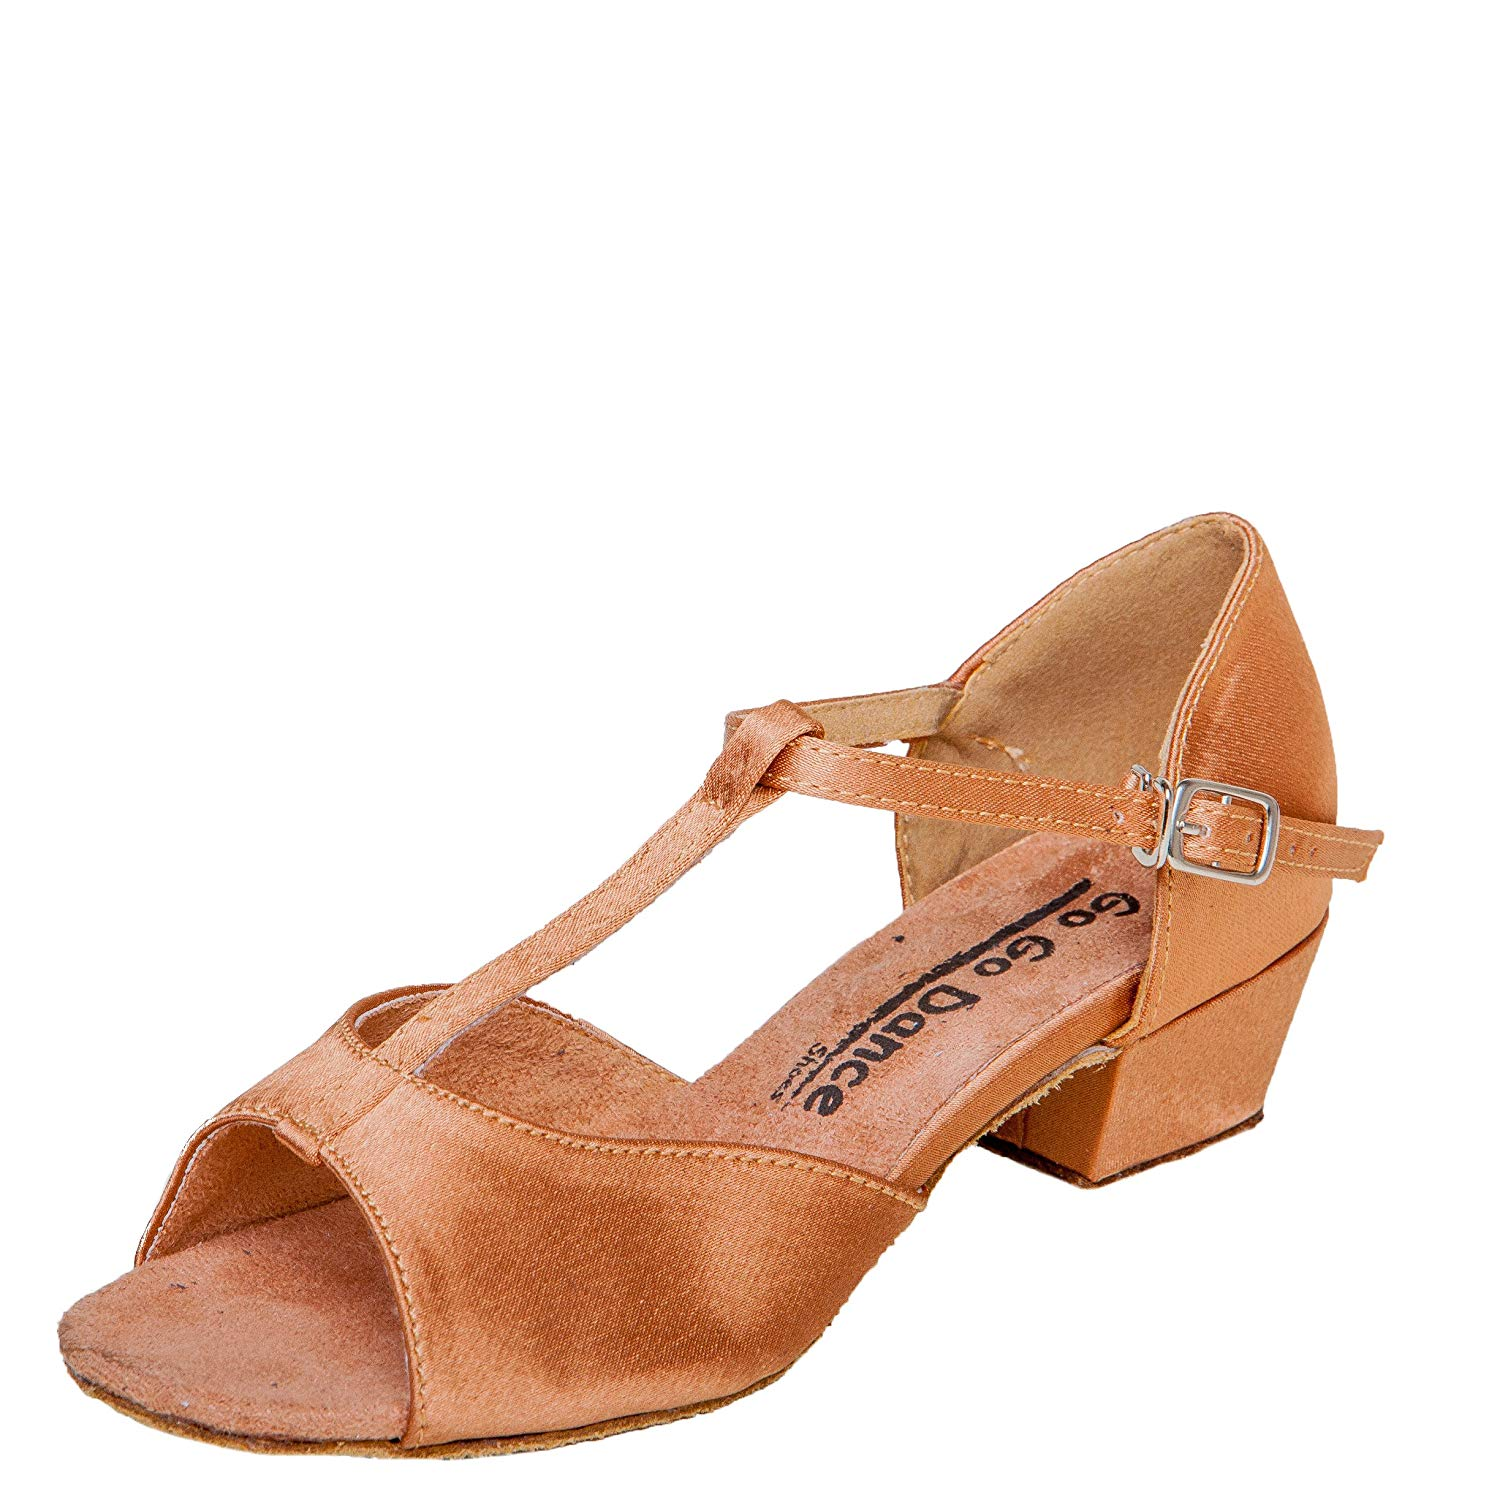 8cbac7d1bc3 Get Quotations · Gogo Dance Shoes GO3062G Girls Youth Ballroom Shoes Dark  Tan Satin with 1.5